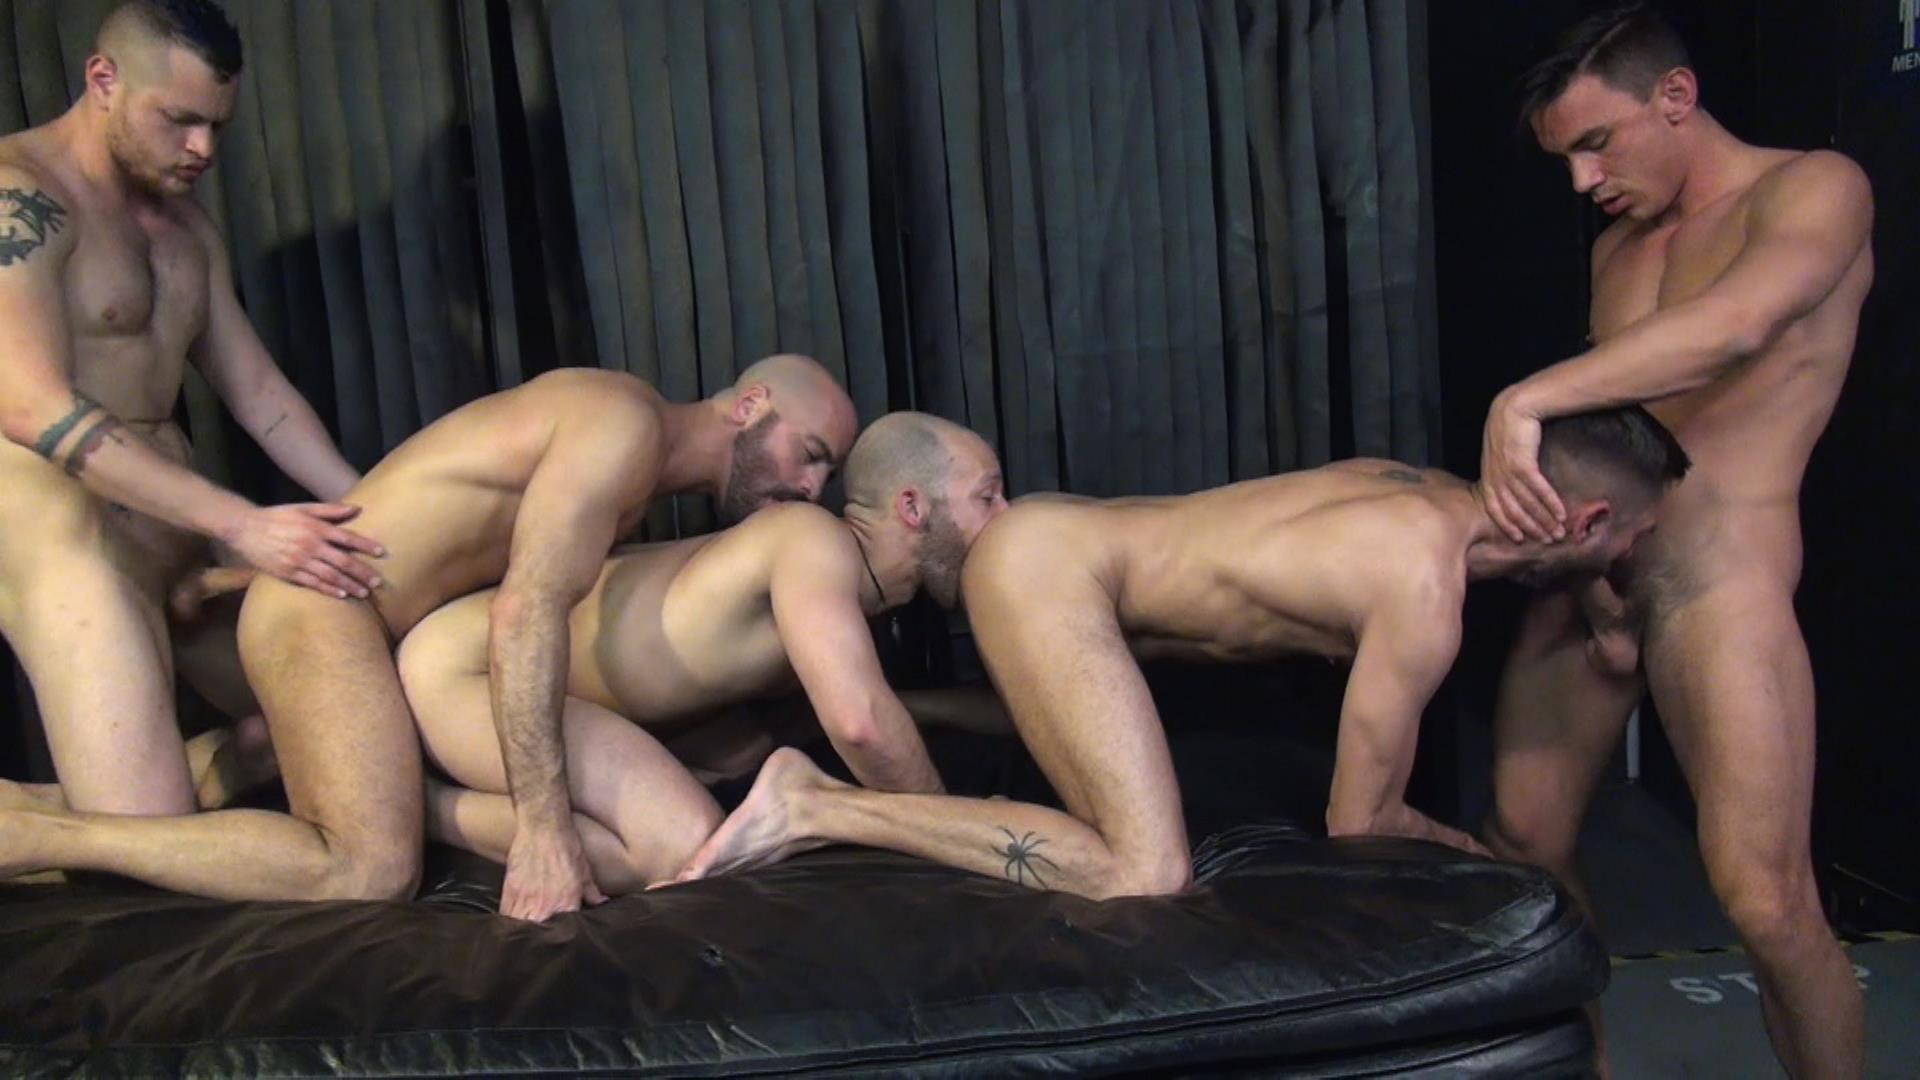 Raw Fuck Club Blue Bailey and Dylan Strokes and Adam Russo and Dean Brody and Jay Brix Bareback Orgy Amateur Gay Porn 6 Adam Russo Getting Double Penetrated At A Bareback Sex Party